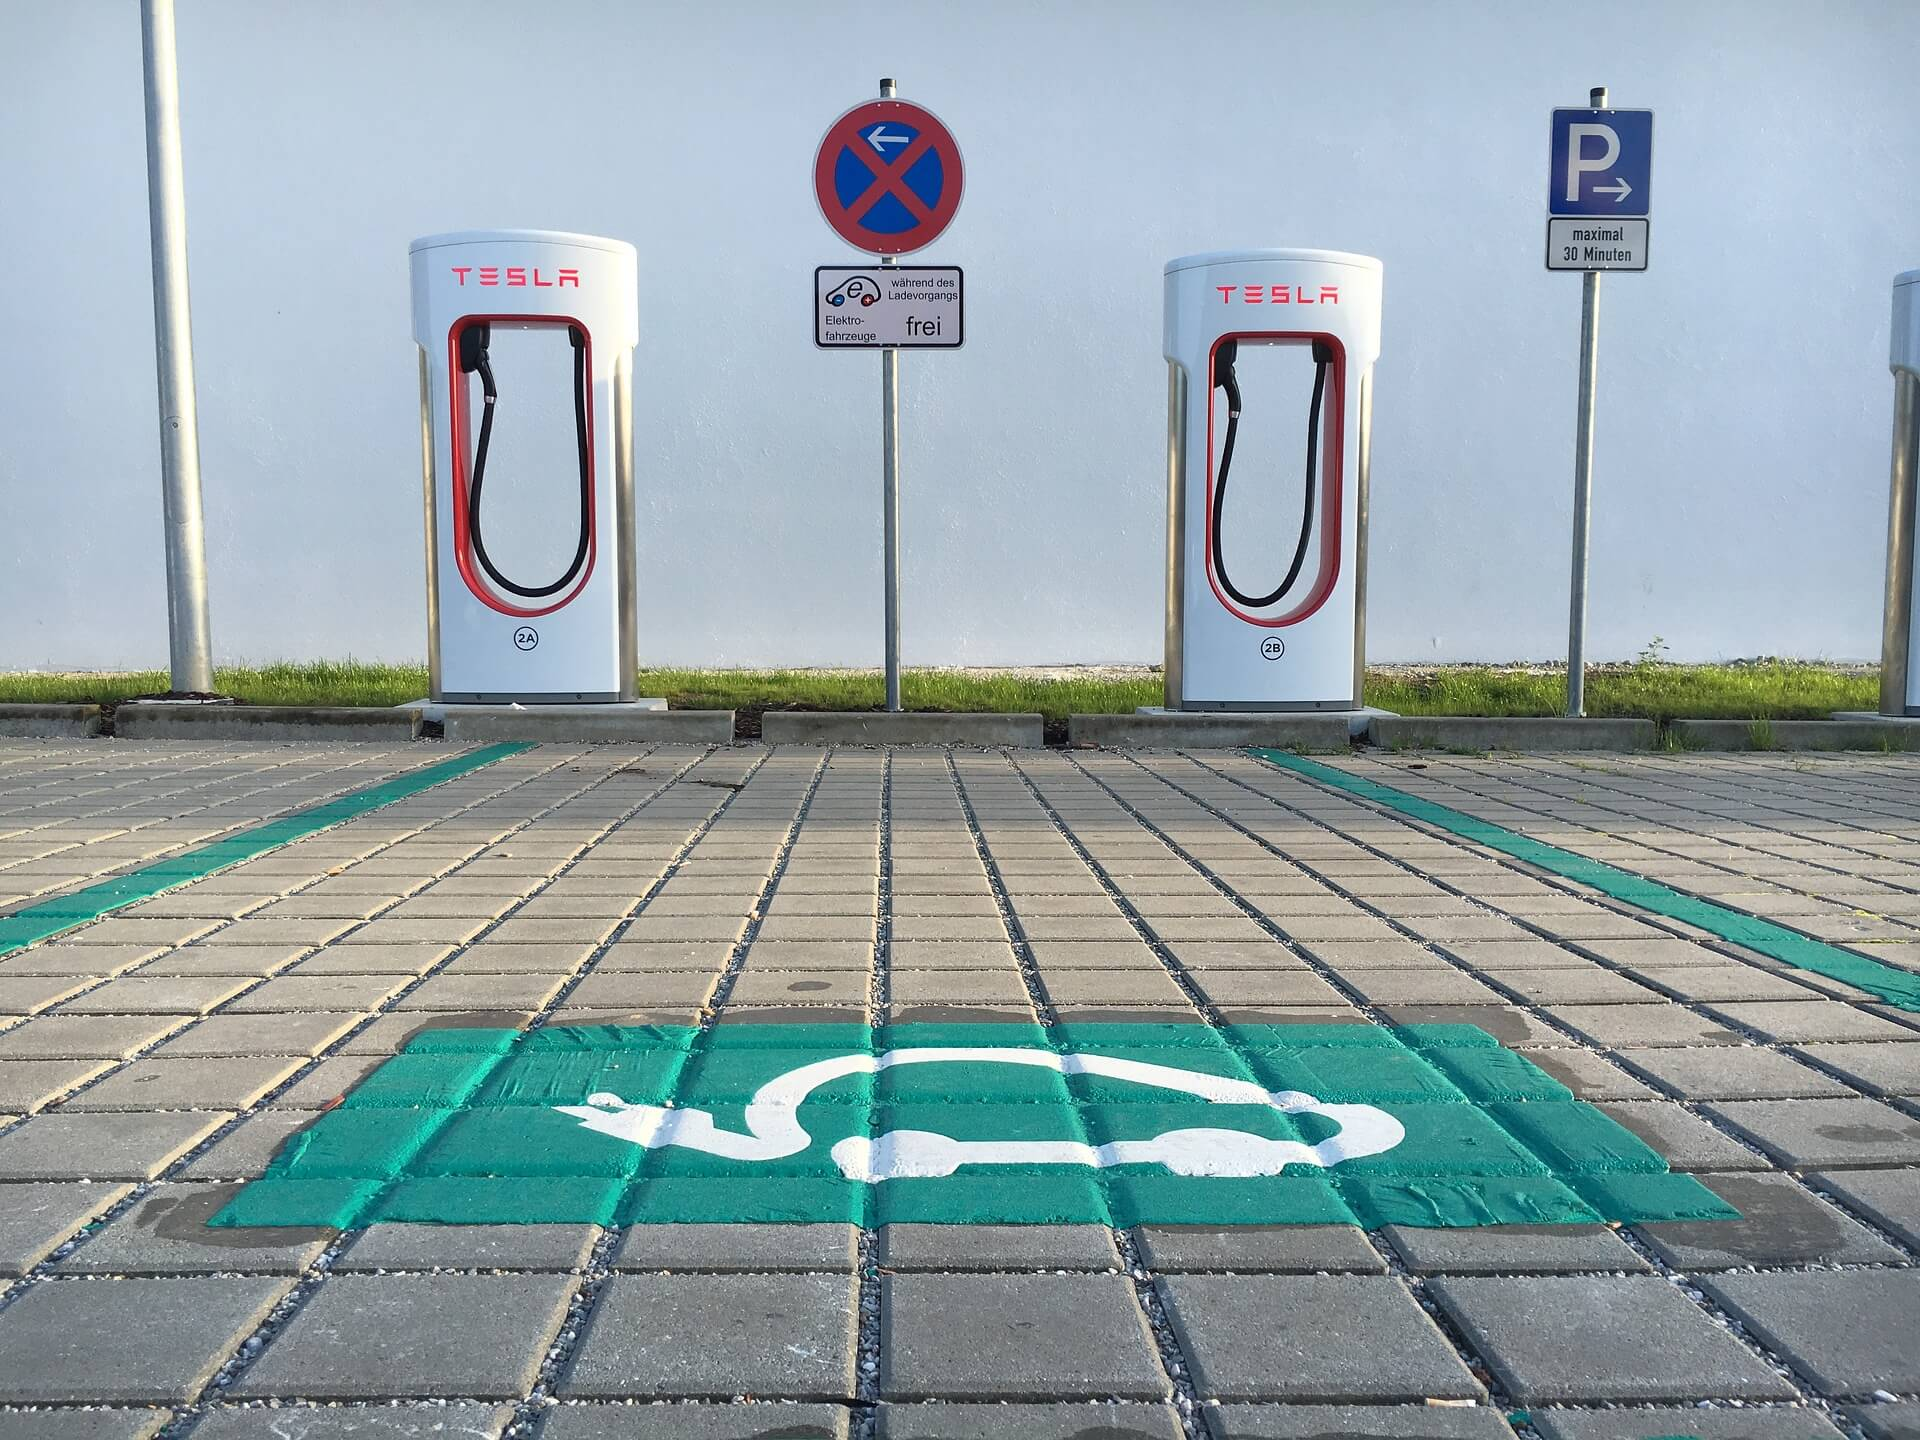 Supercharging Station at a stop-over location